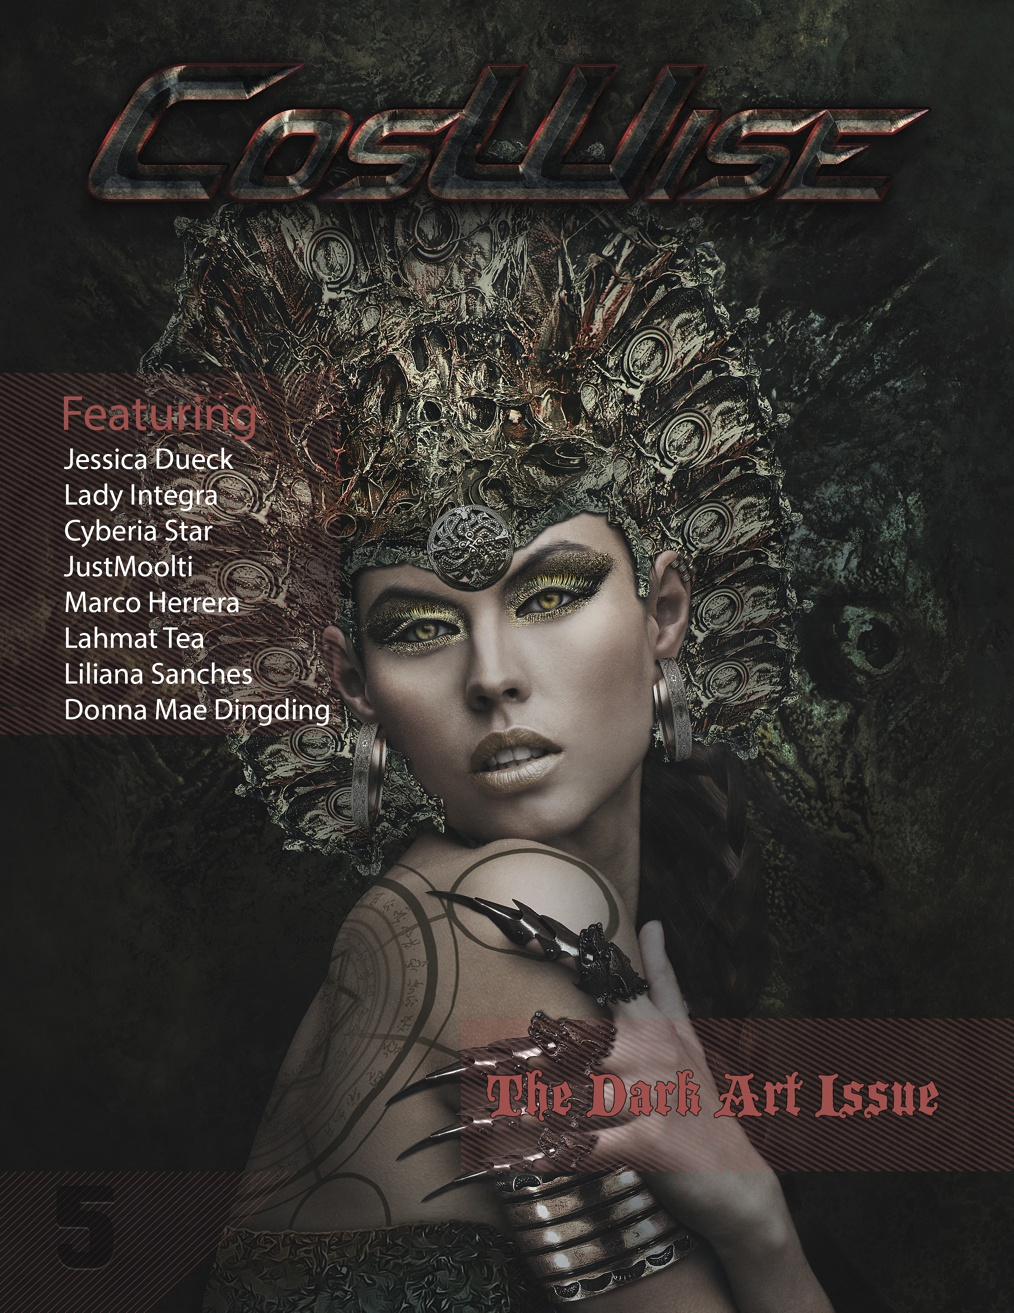 CosWise Magazine Issue 5 (Dark Art Issue) by coswisemagazine